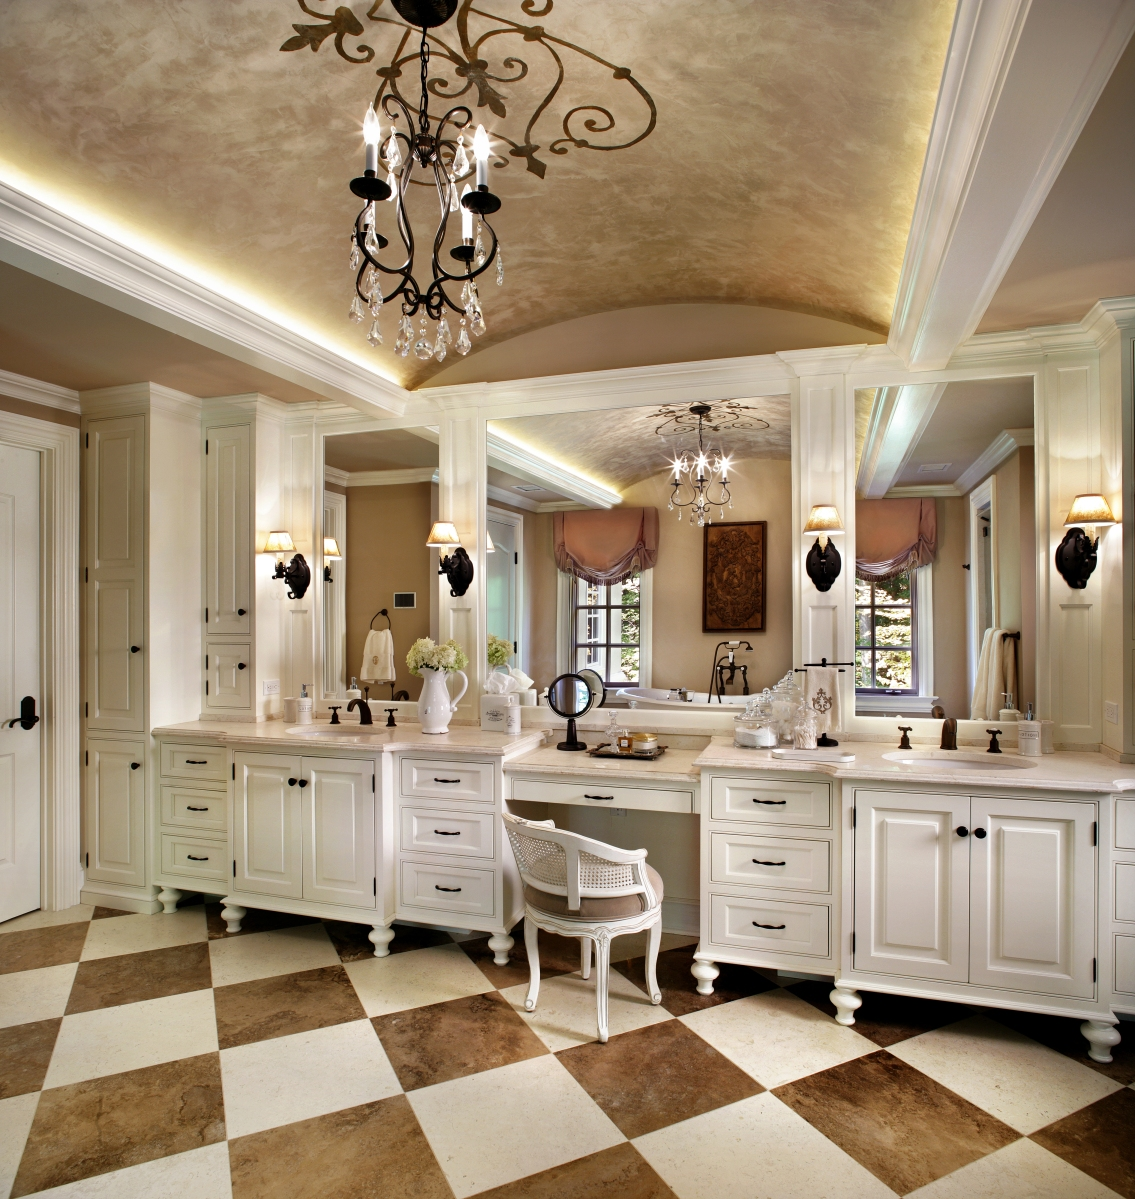 Inspirations for French Bathroom Design